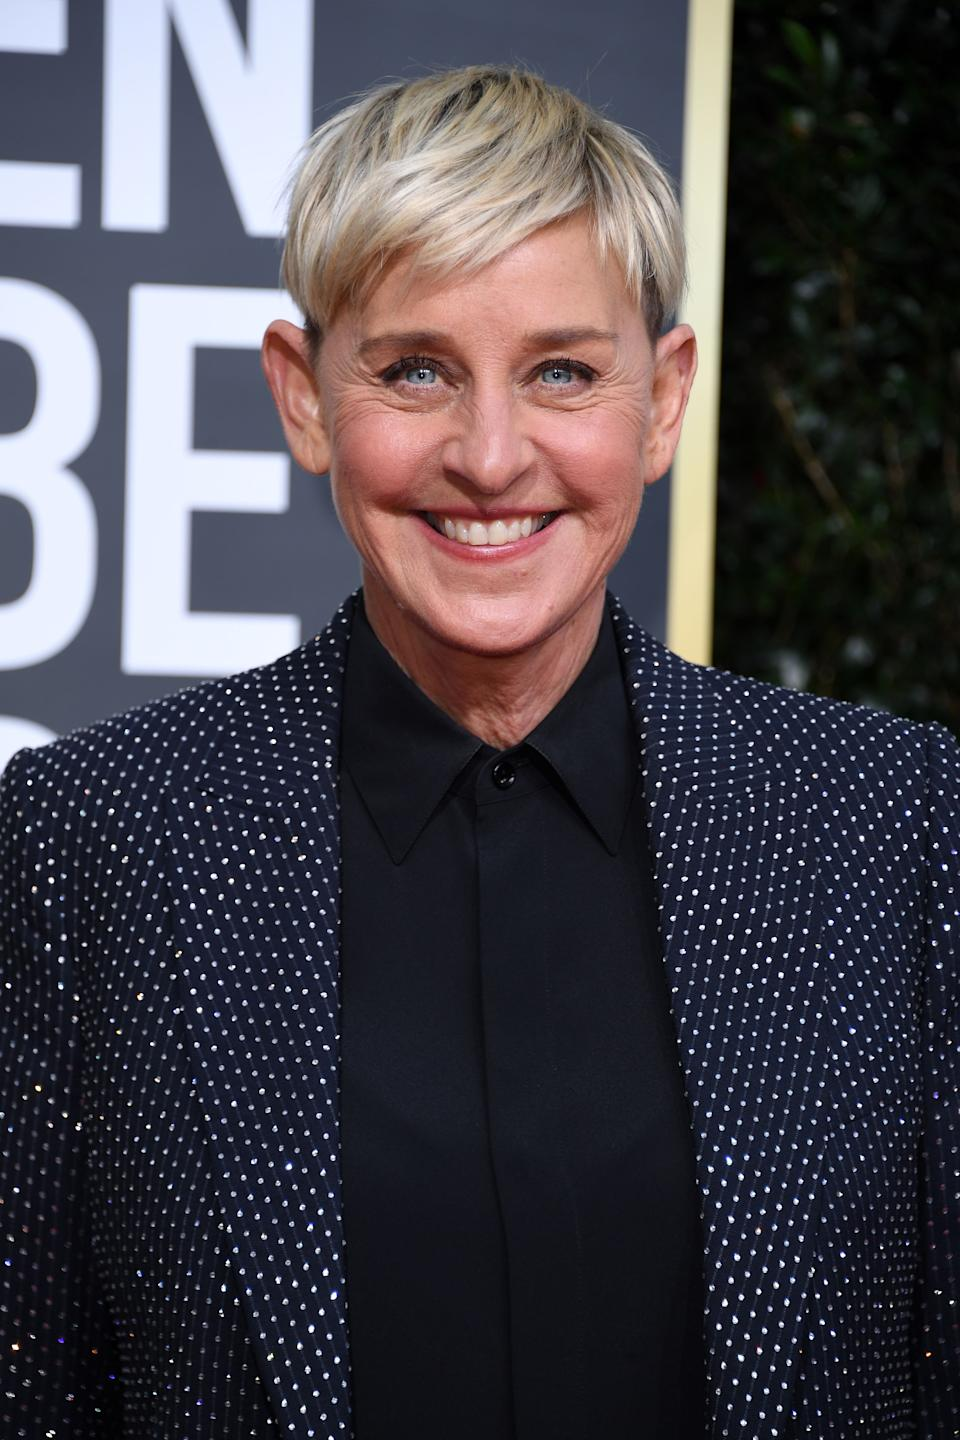 US comedian Ellen DeGeneres arrives for the 77th annual Golden Globe Awards on January 5, 2020, at The Beverly Hilton hotel in Beverly Hills, California. (Photo by VALERIE MACON / AFP) (Photo by VALERIE MACON/AFP via Getty Images)